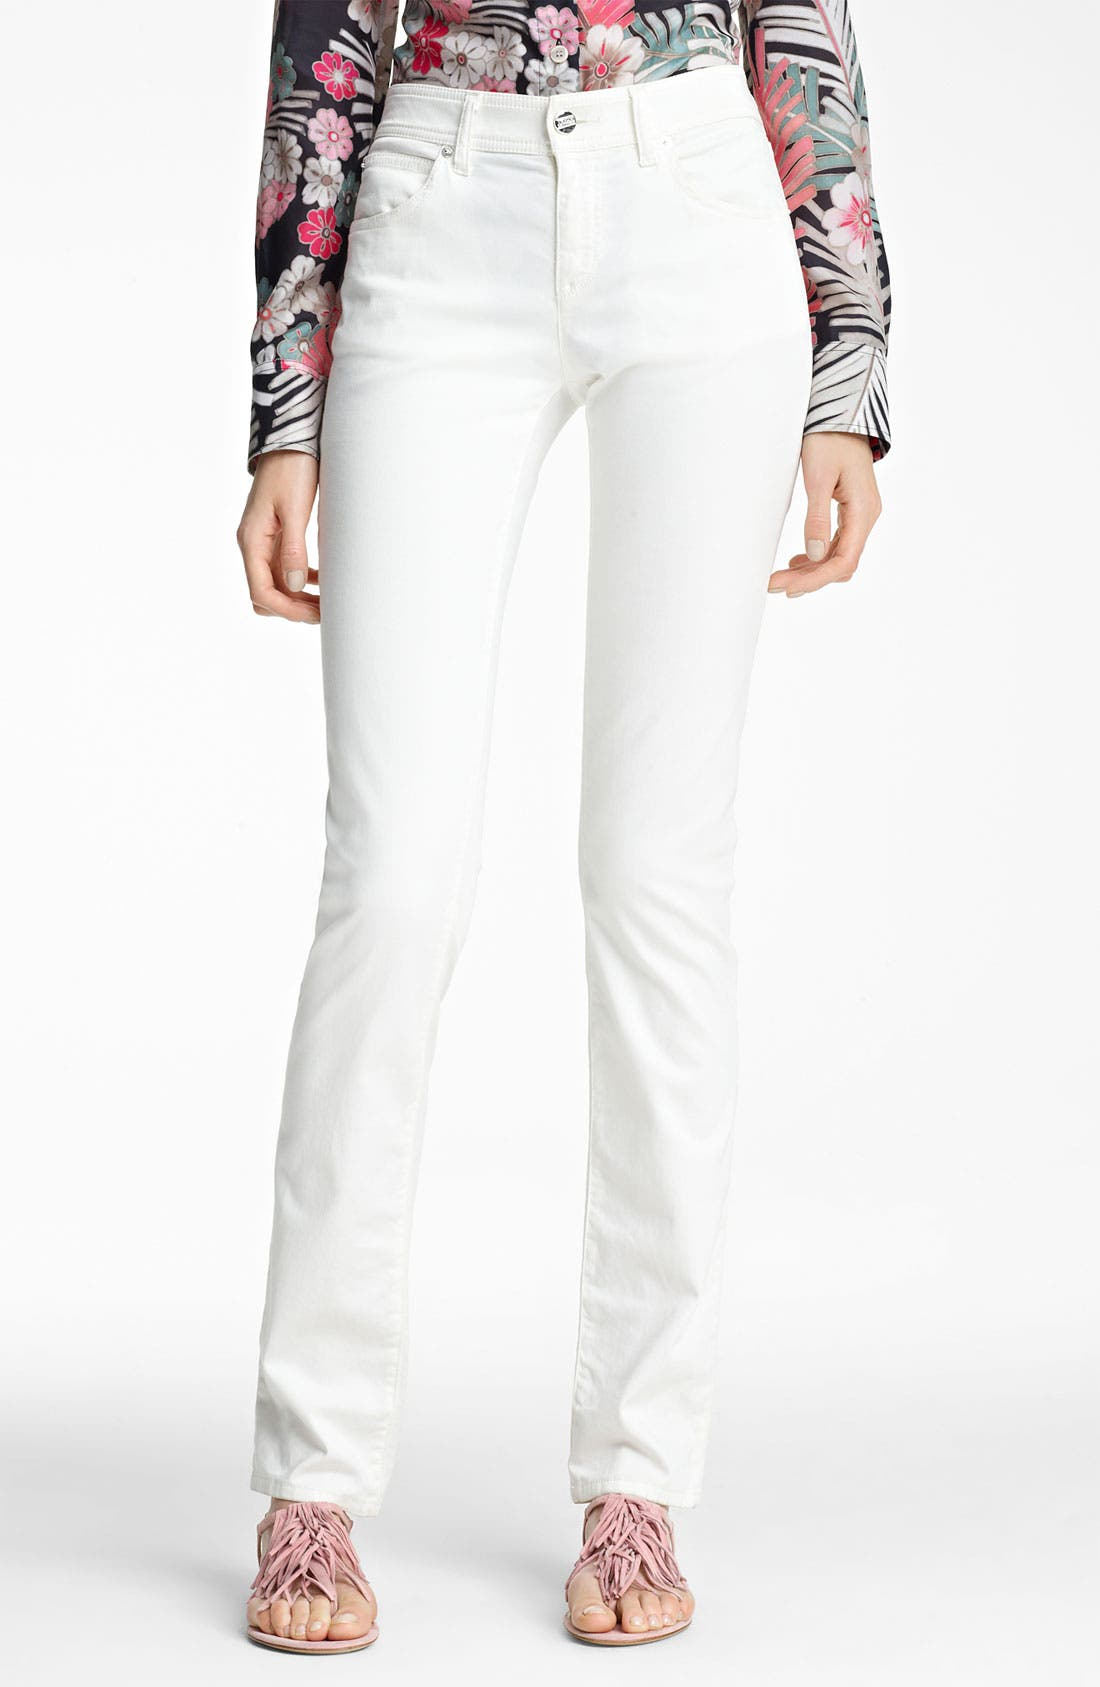 Alternate Image 1 Selected - Armani Collezioni High Waist Stretch Jeans